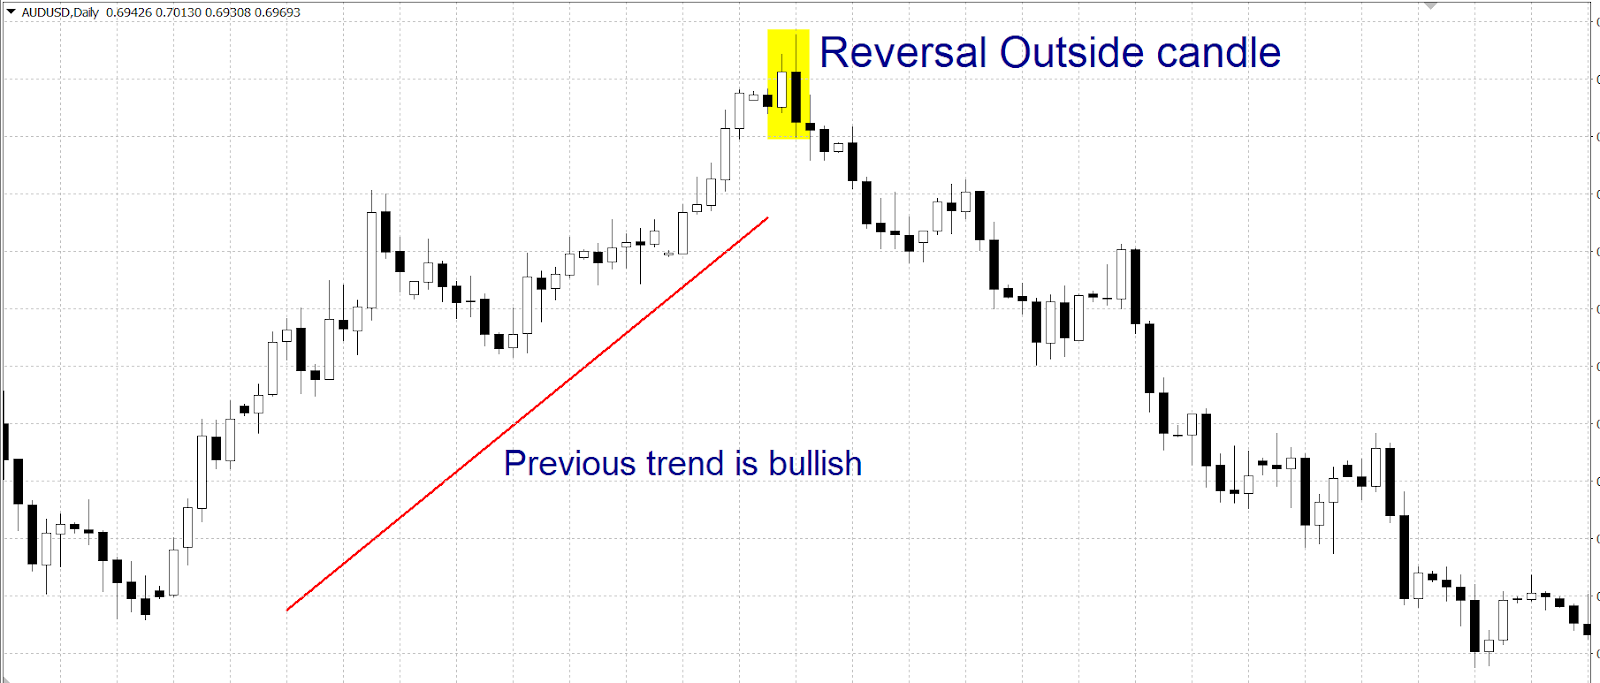 Reversal Outside Candle